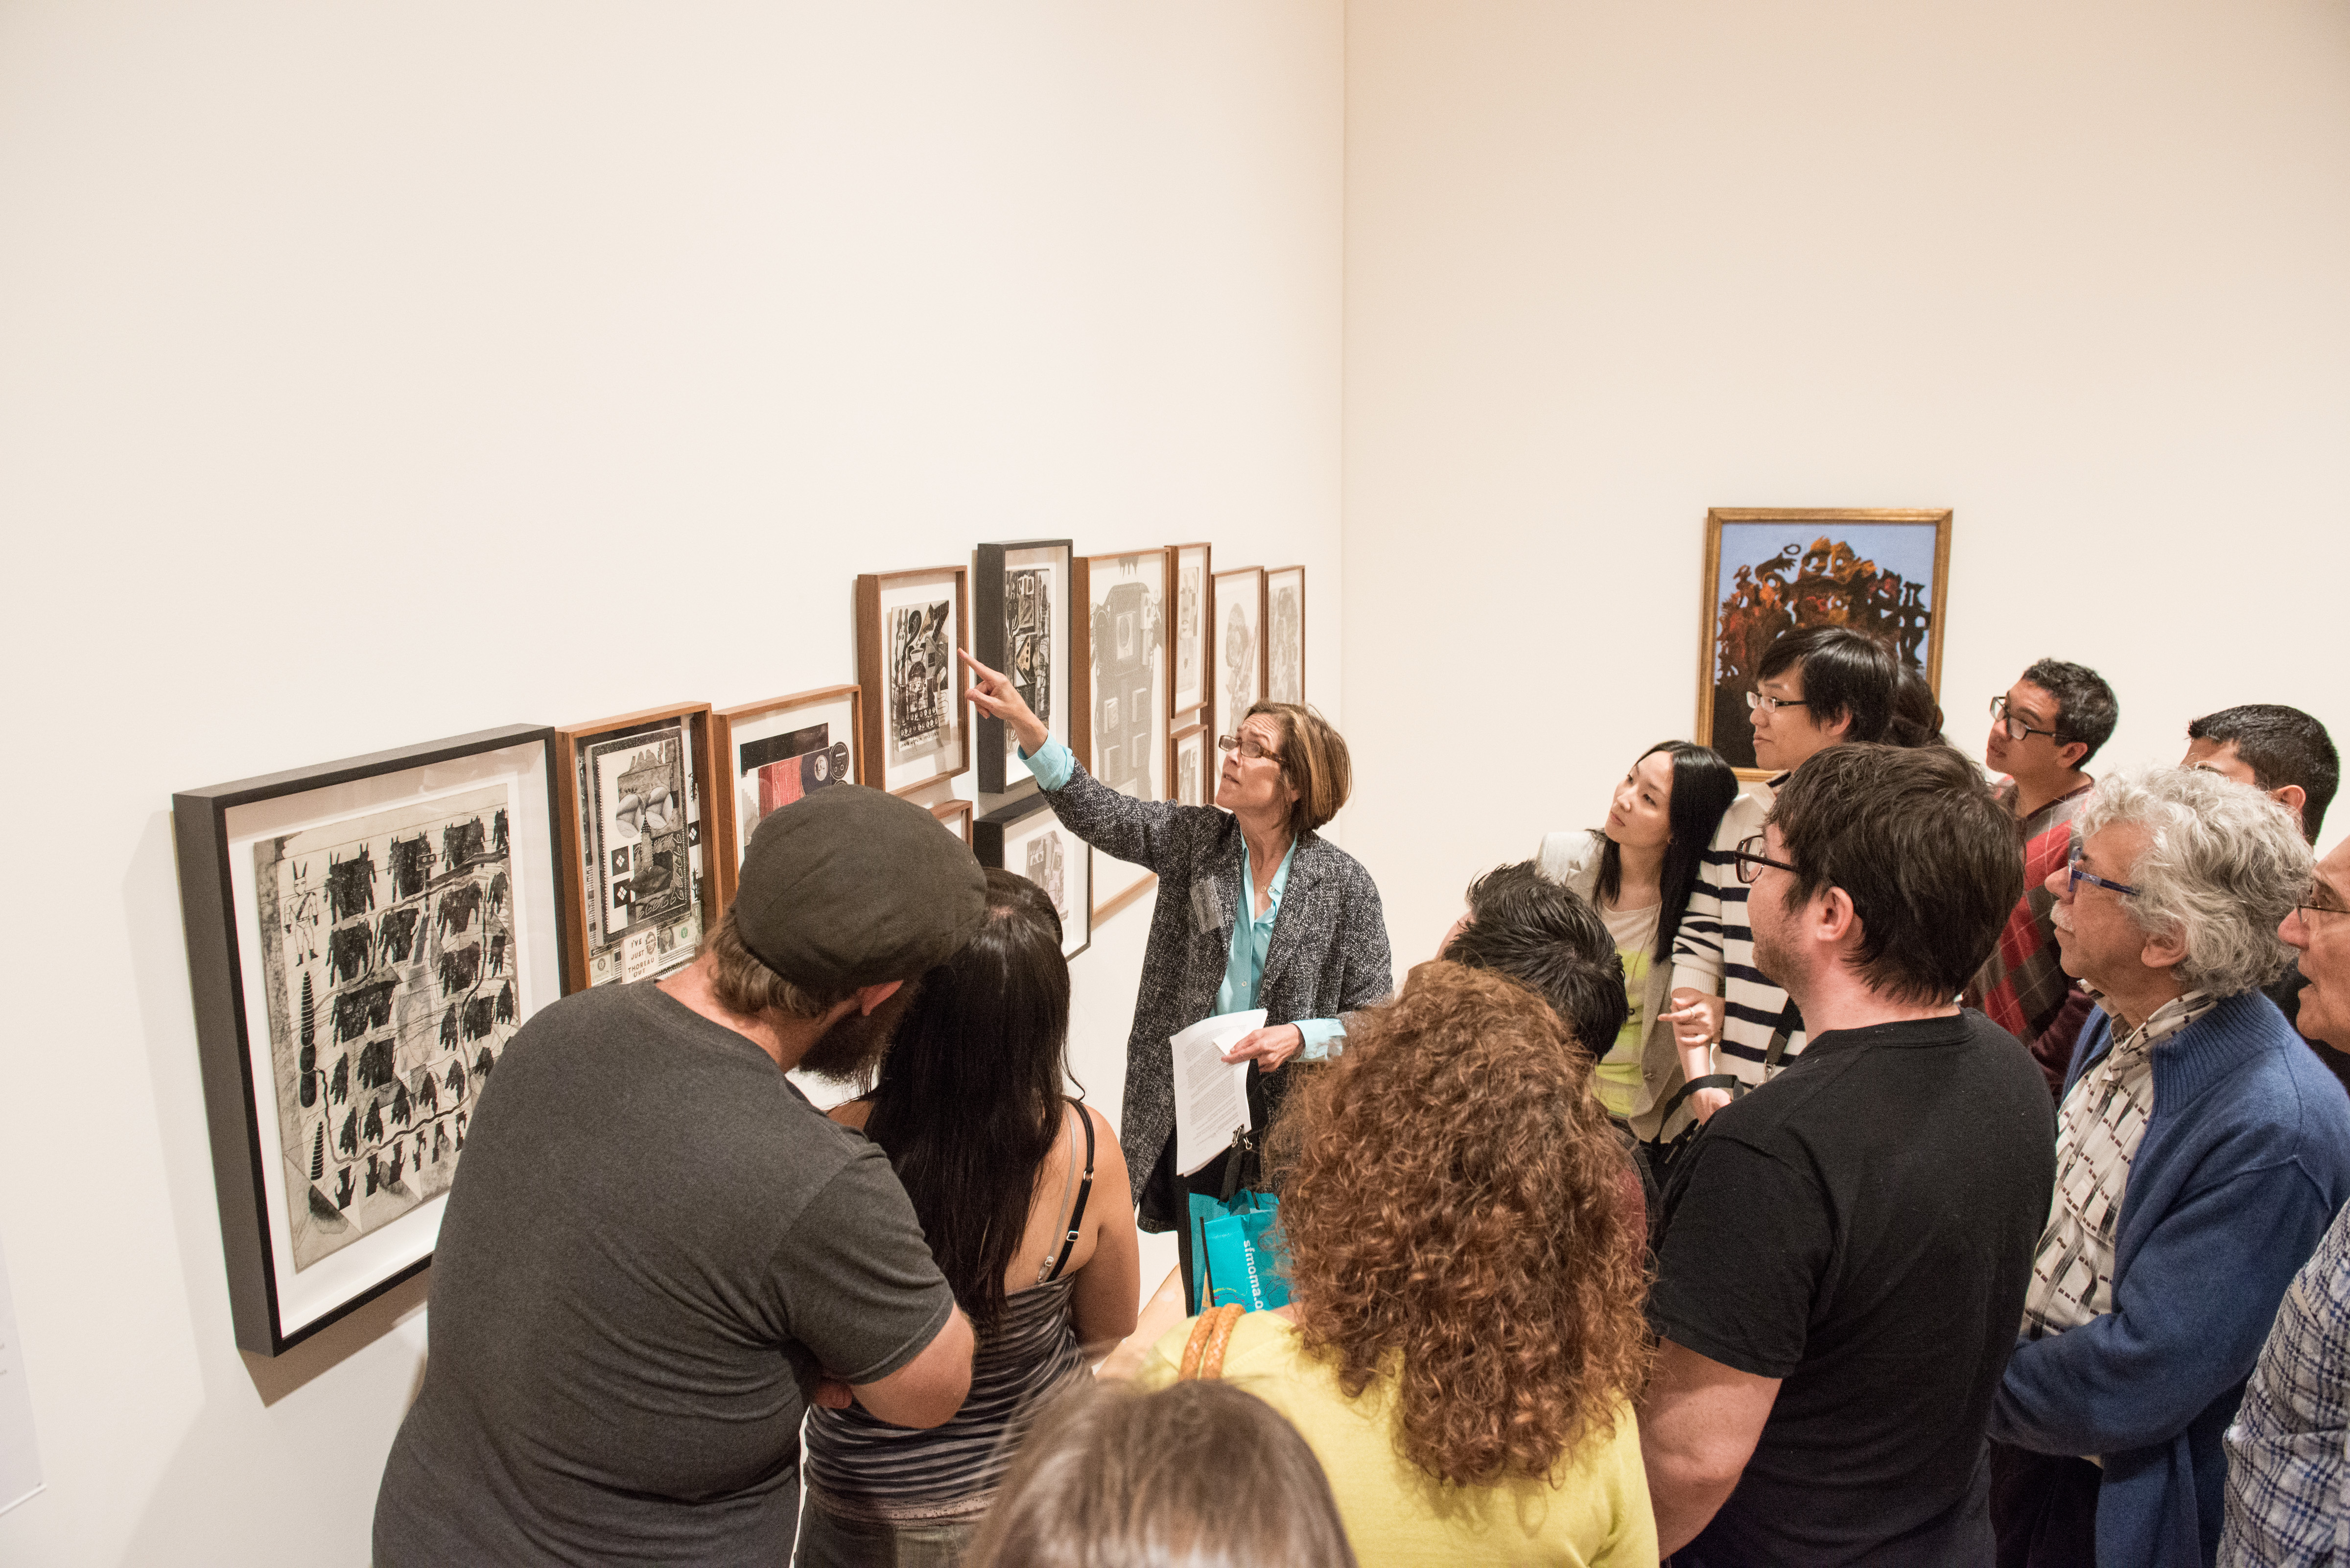 A group of people looking closely at an artwork